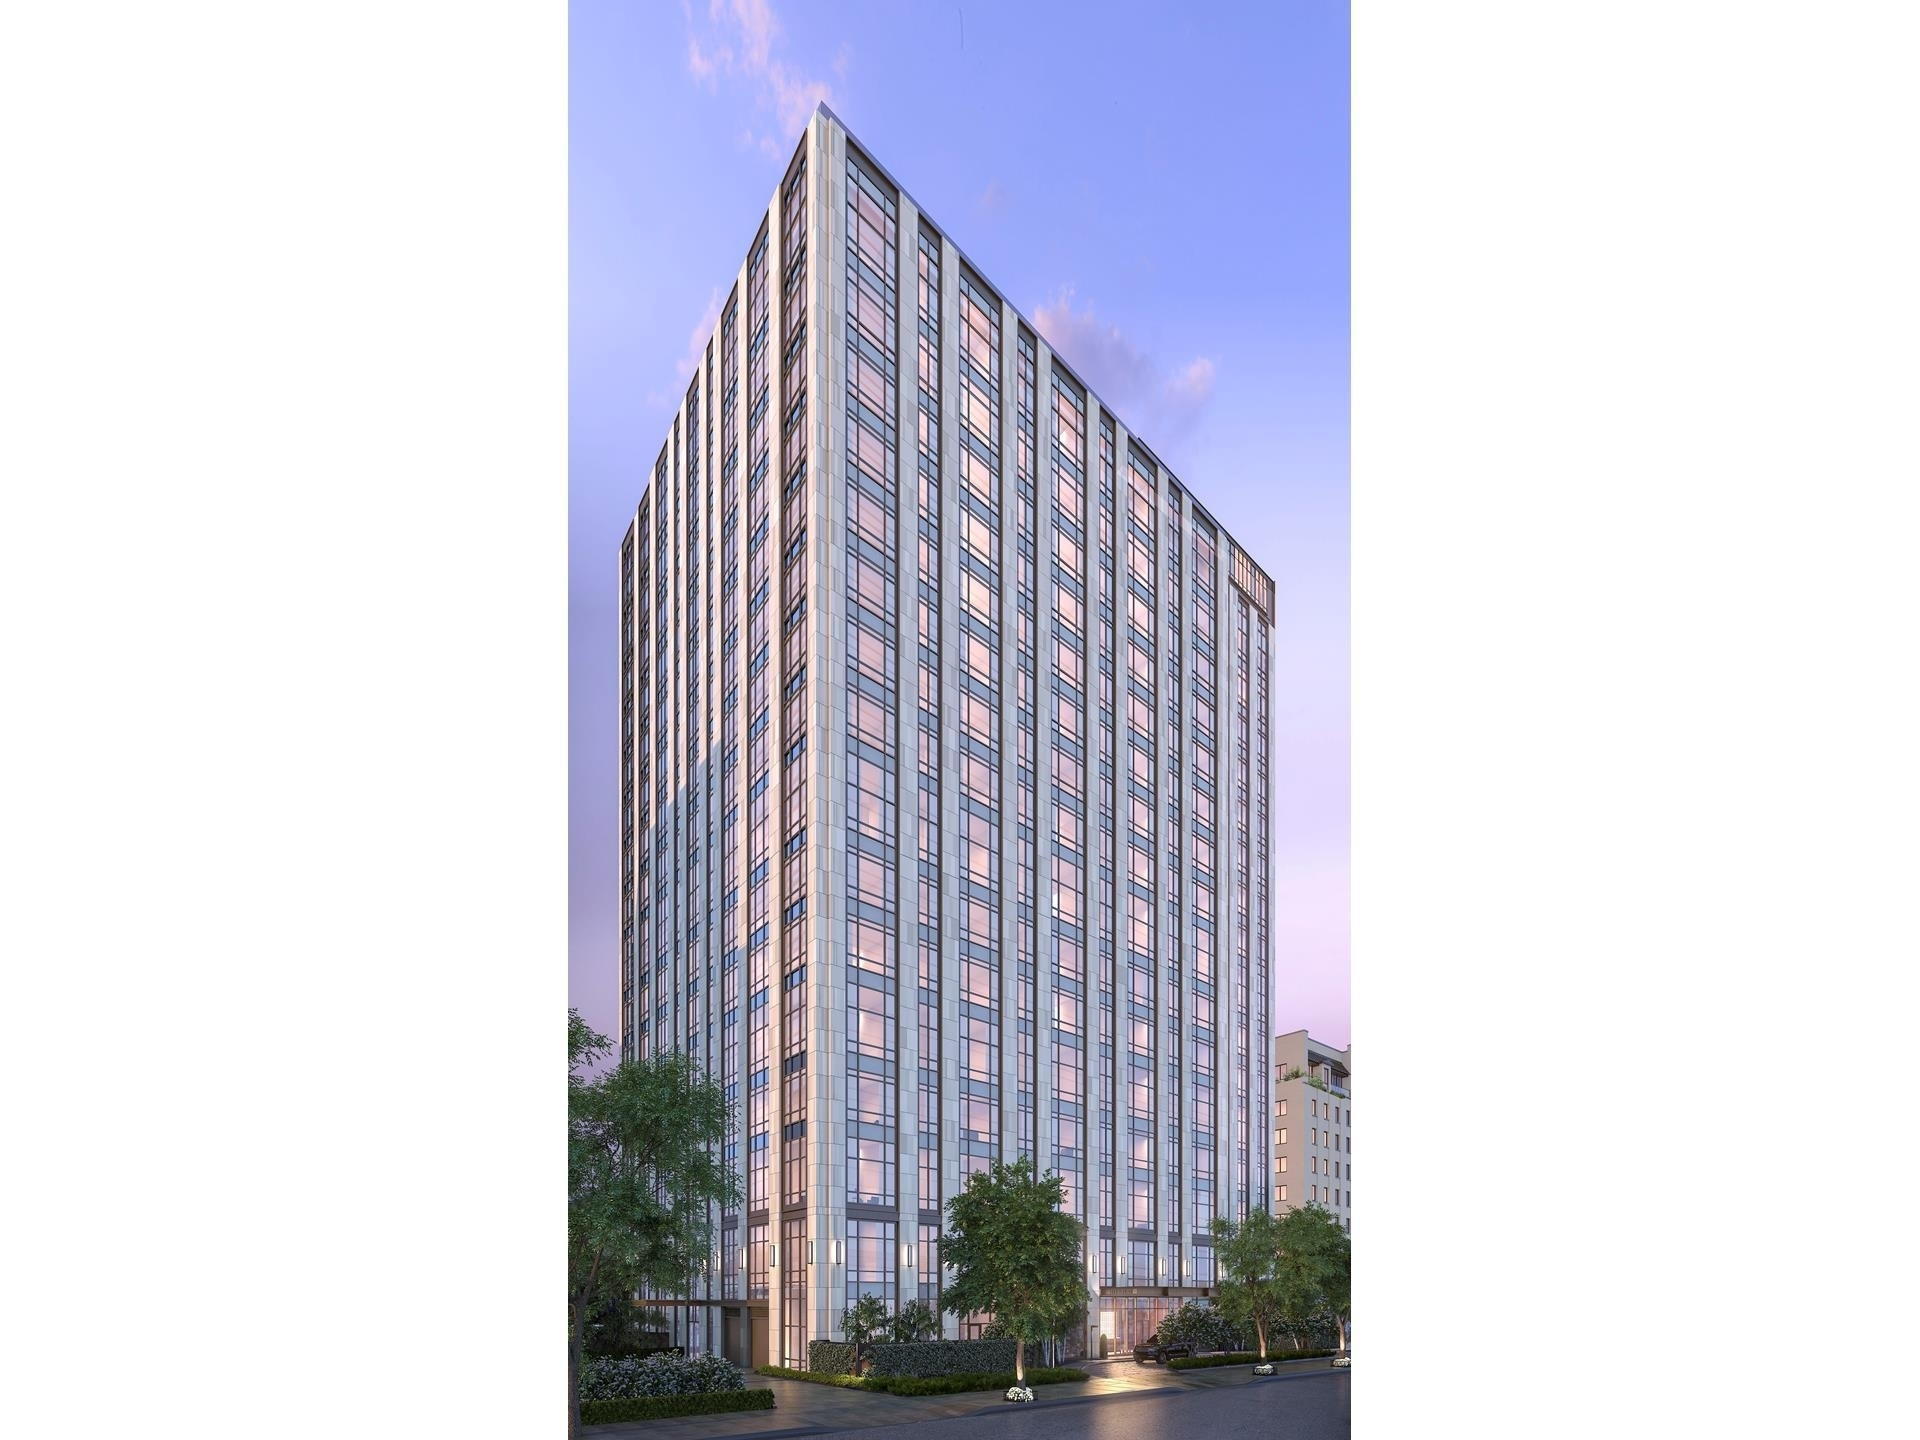 2. Condominiums for Sale at Gramercy Square, 215 East 19th St, 17A Gramercy Park, New York, NY 10003